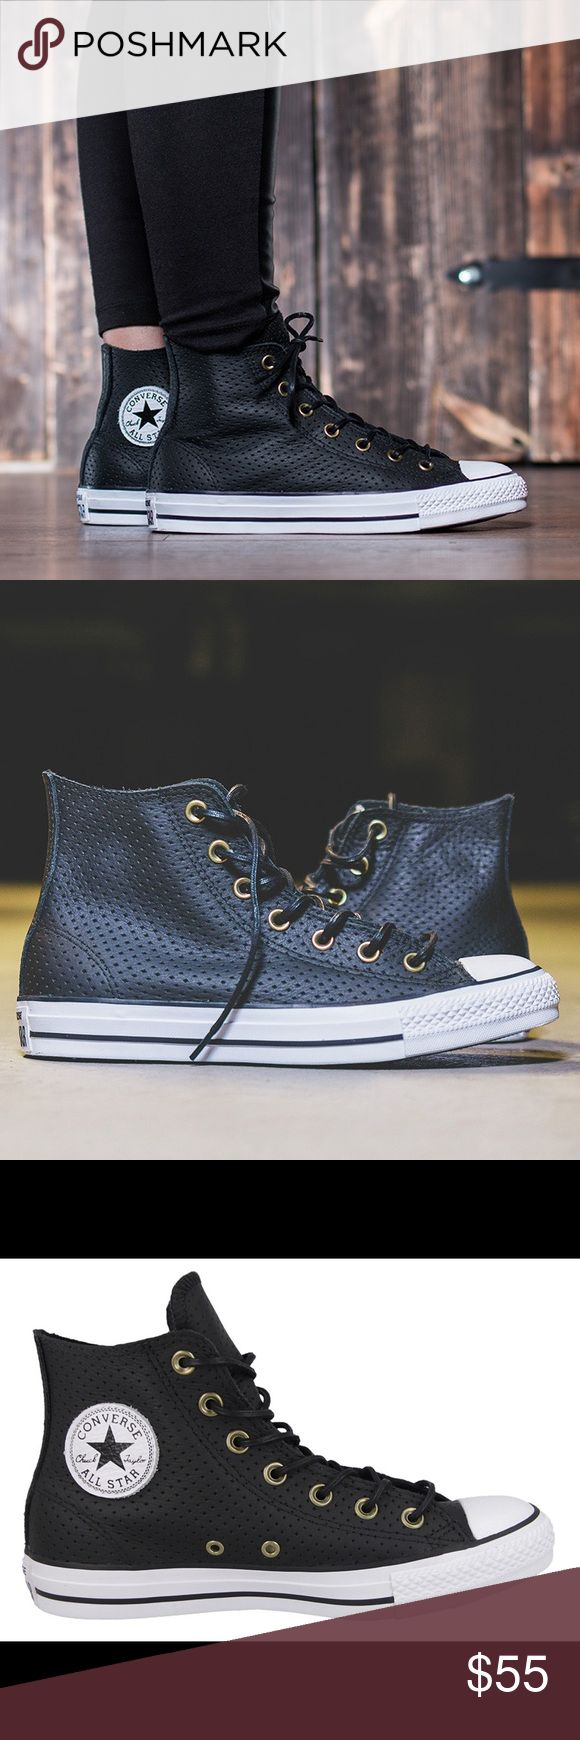 ❗️1 HOUR-SALE❗️Converse womens shoes Chuck Taylor Brand new womens size 7.5. Black Converse Shoes Sneakers